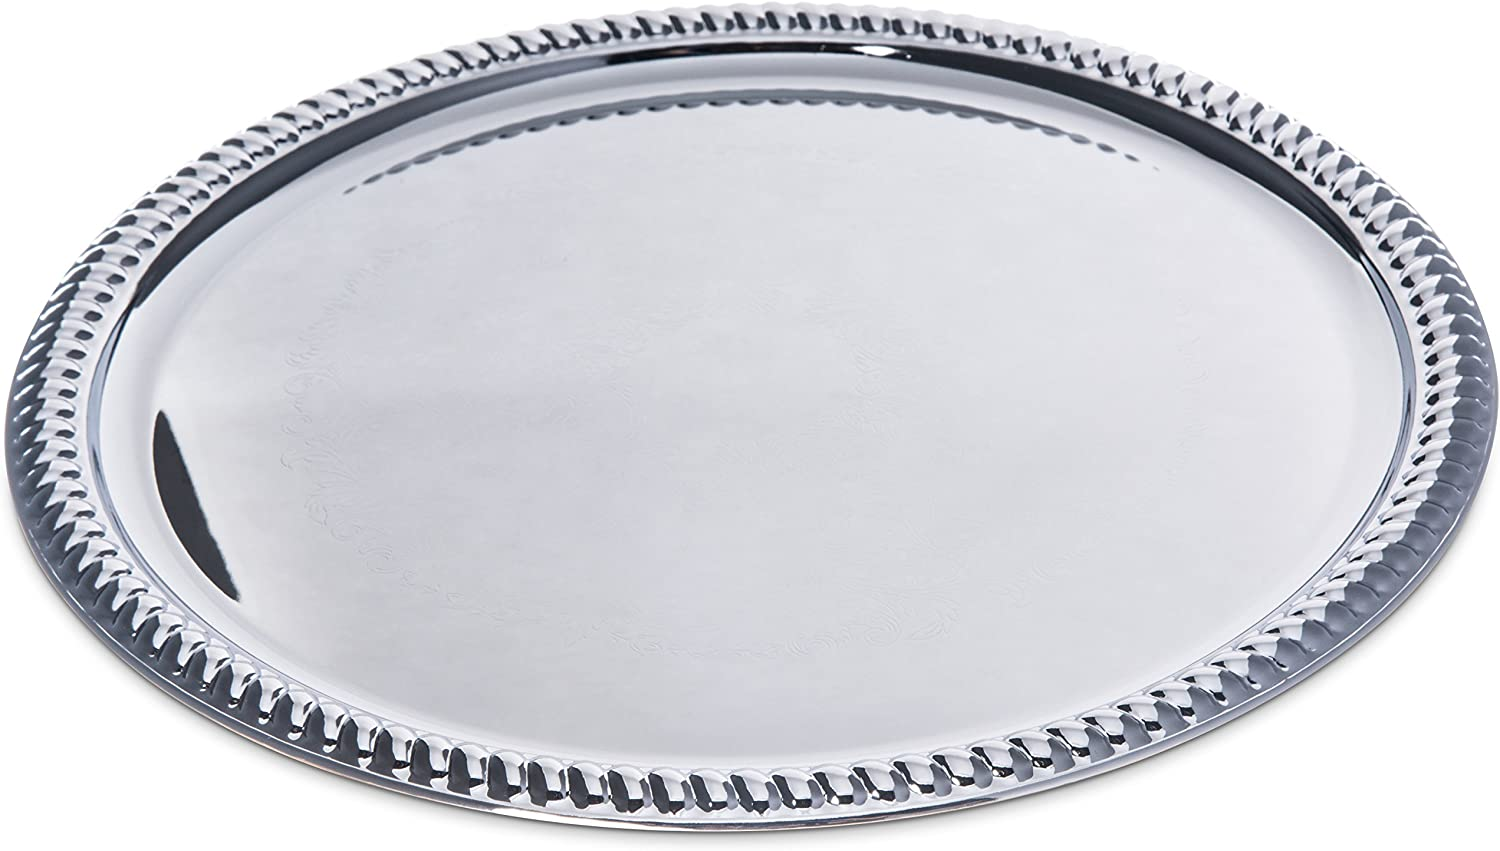 Carlisle 608907 Round Chrome Plated Serving Tray, 14